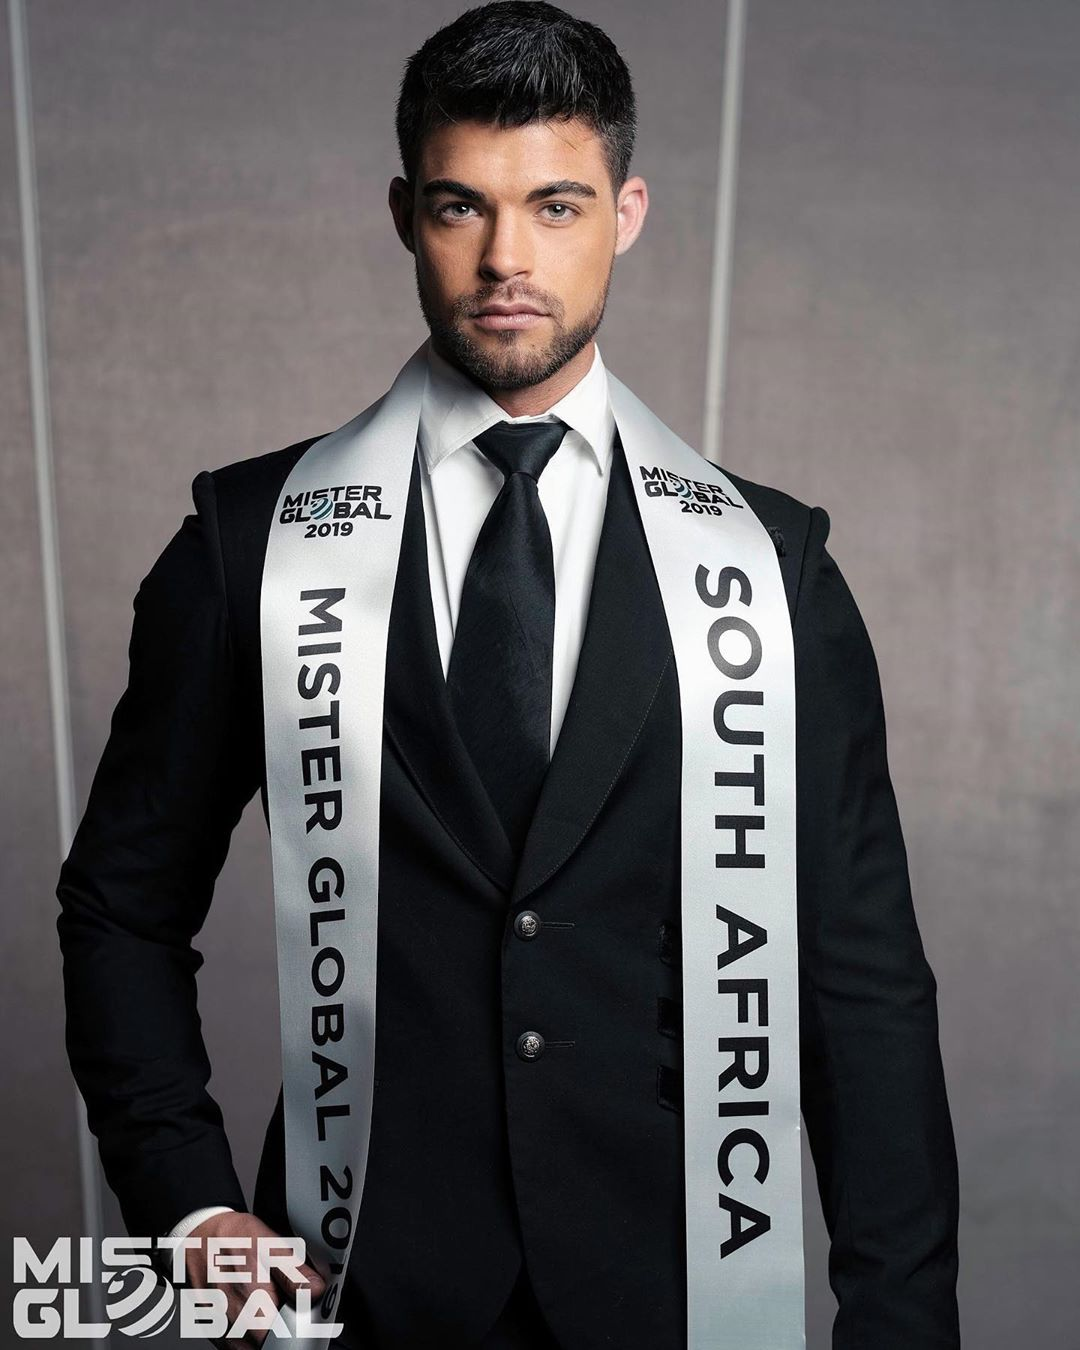 Mister South Africa